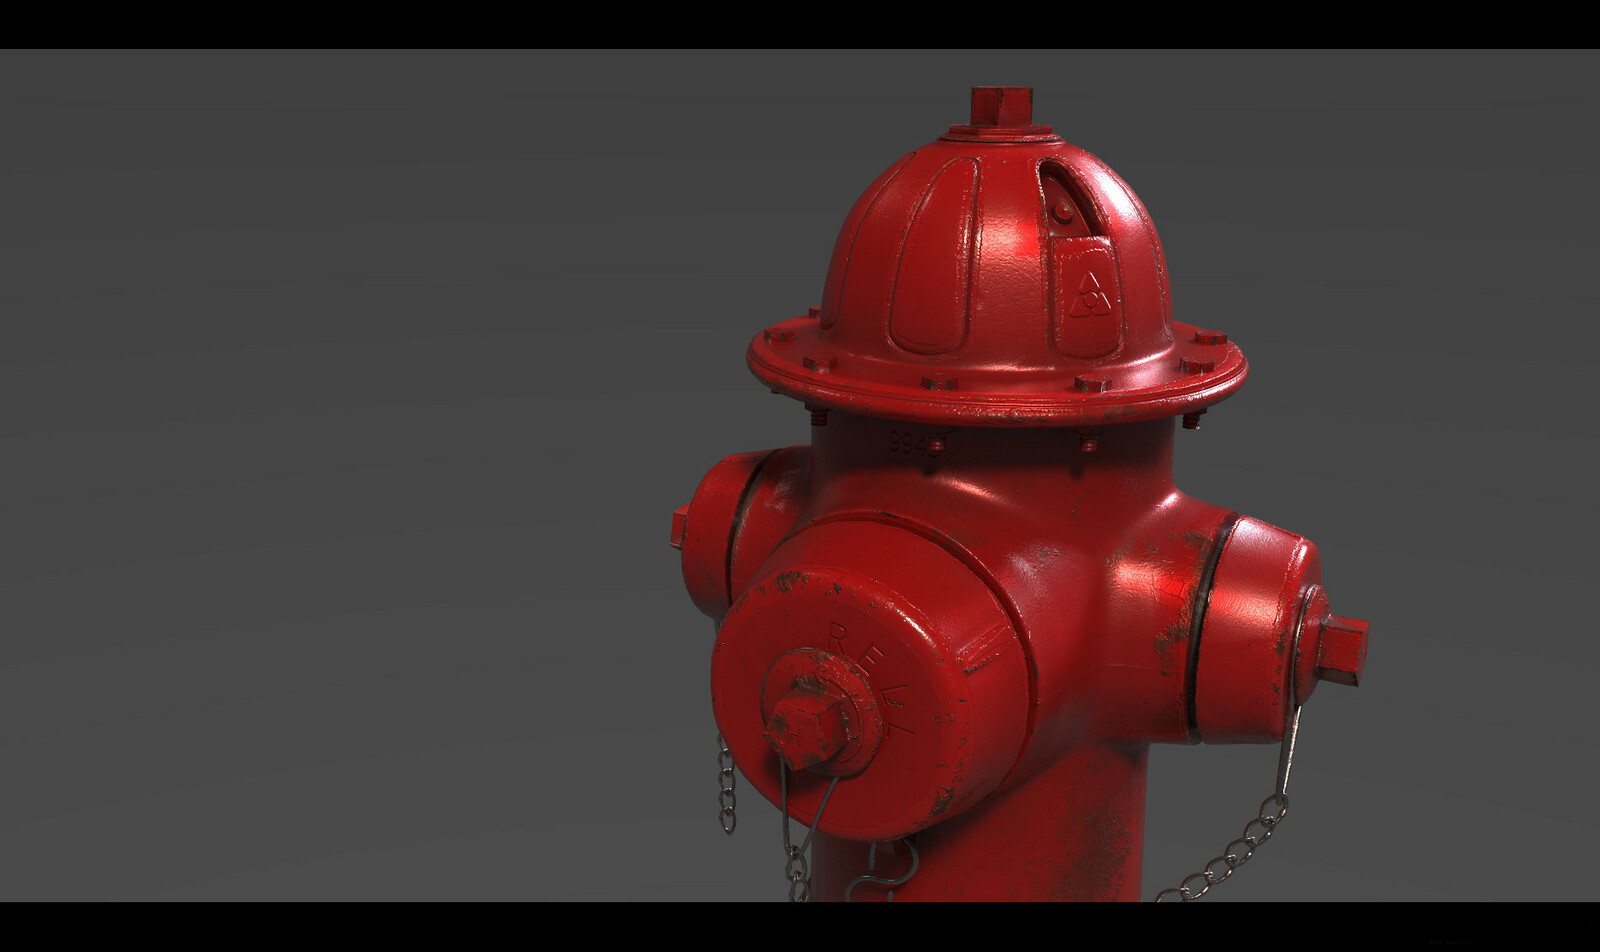 Iray Render in Substance Painter